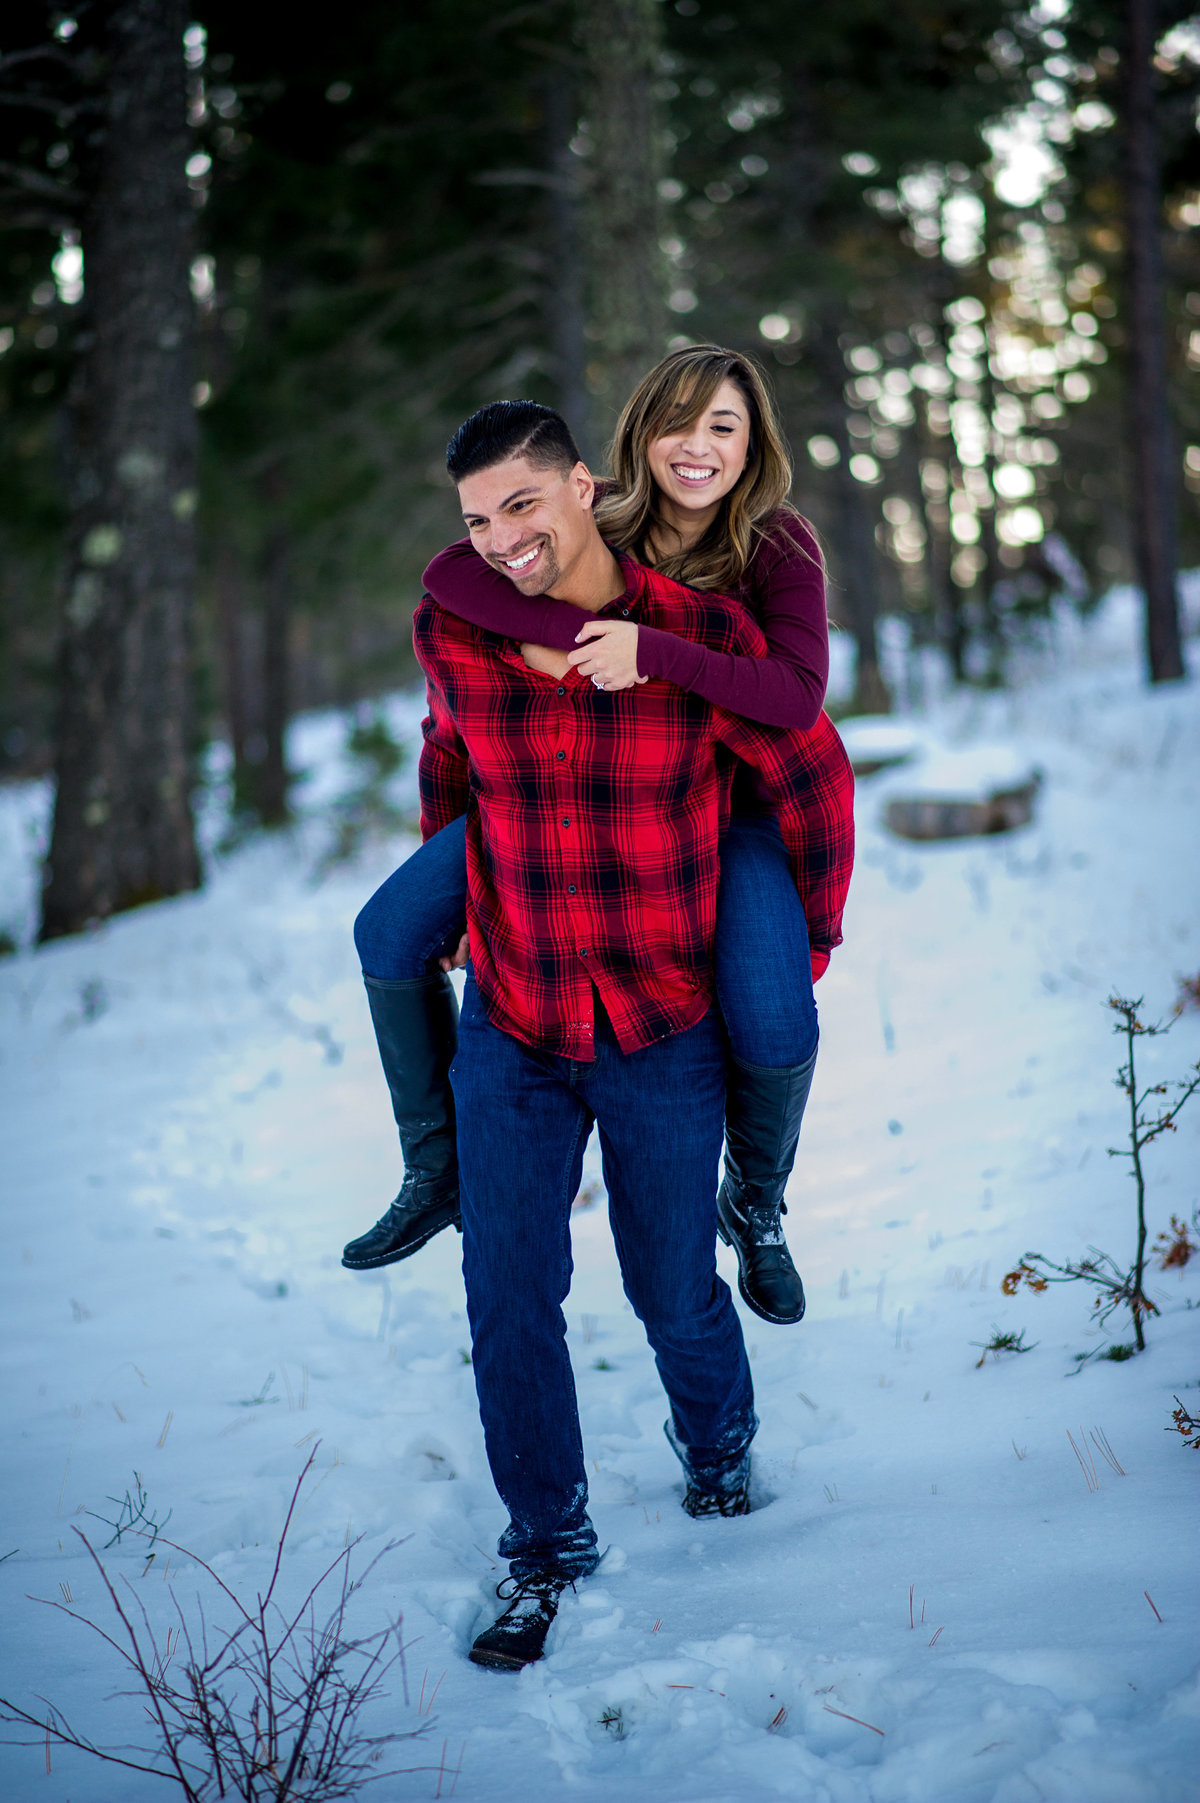 Dan Dalstra El Paso Wedding Photographer Engagement 0018